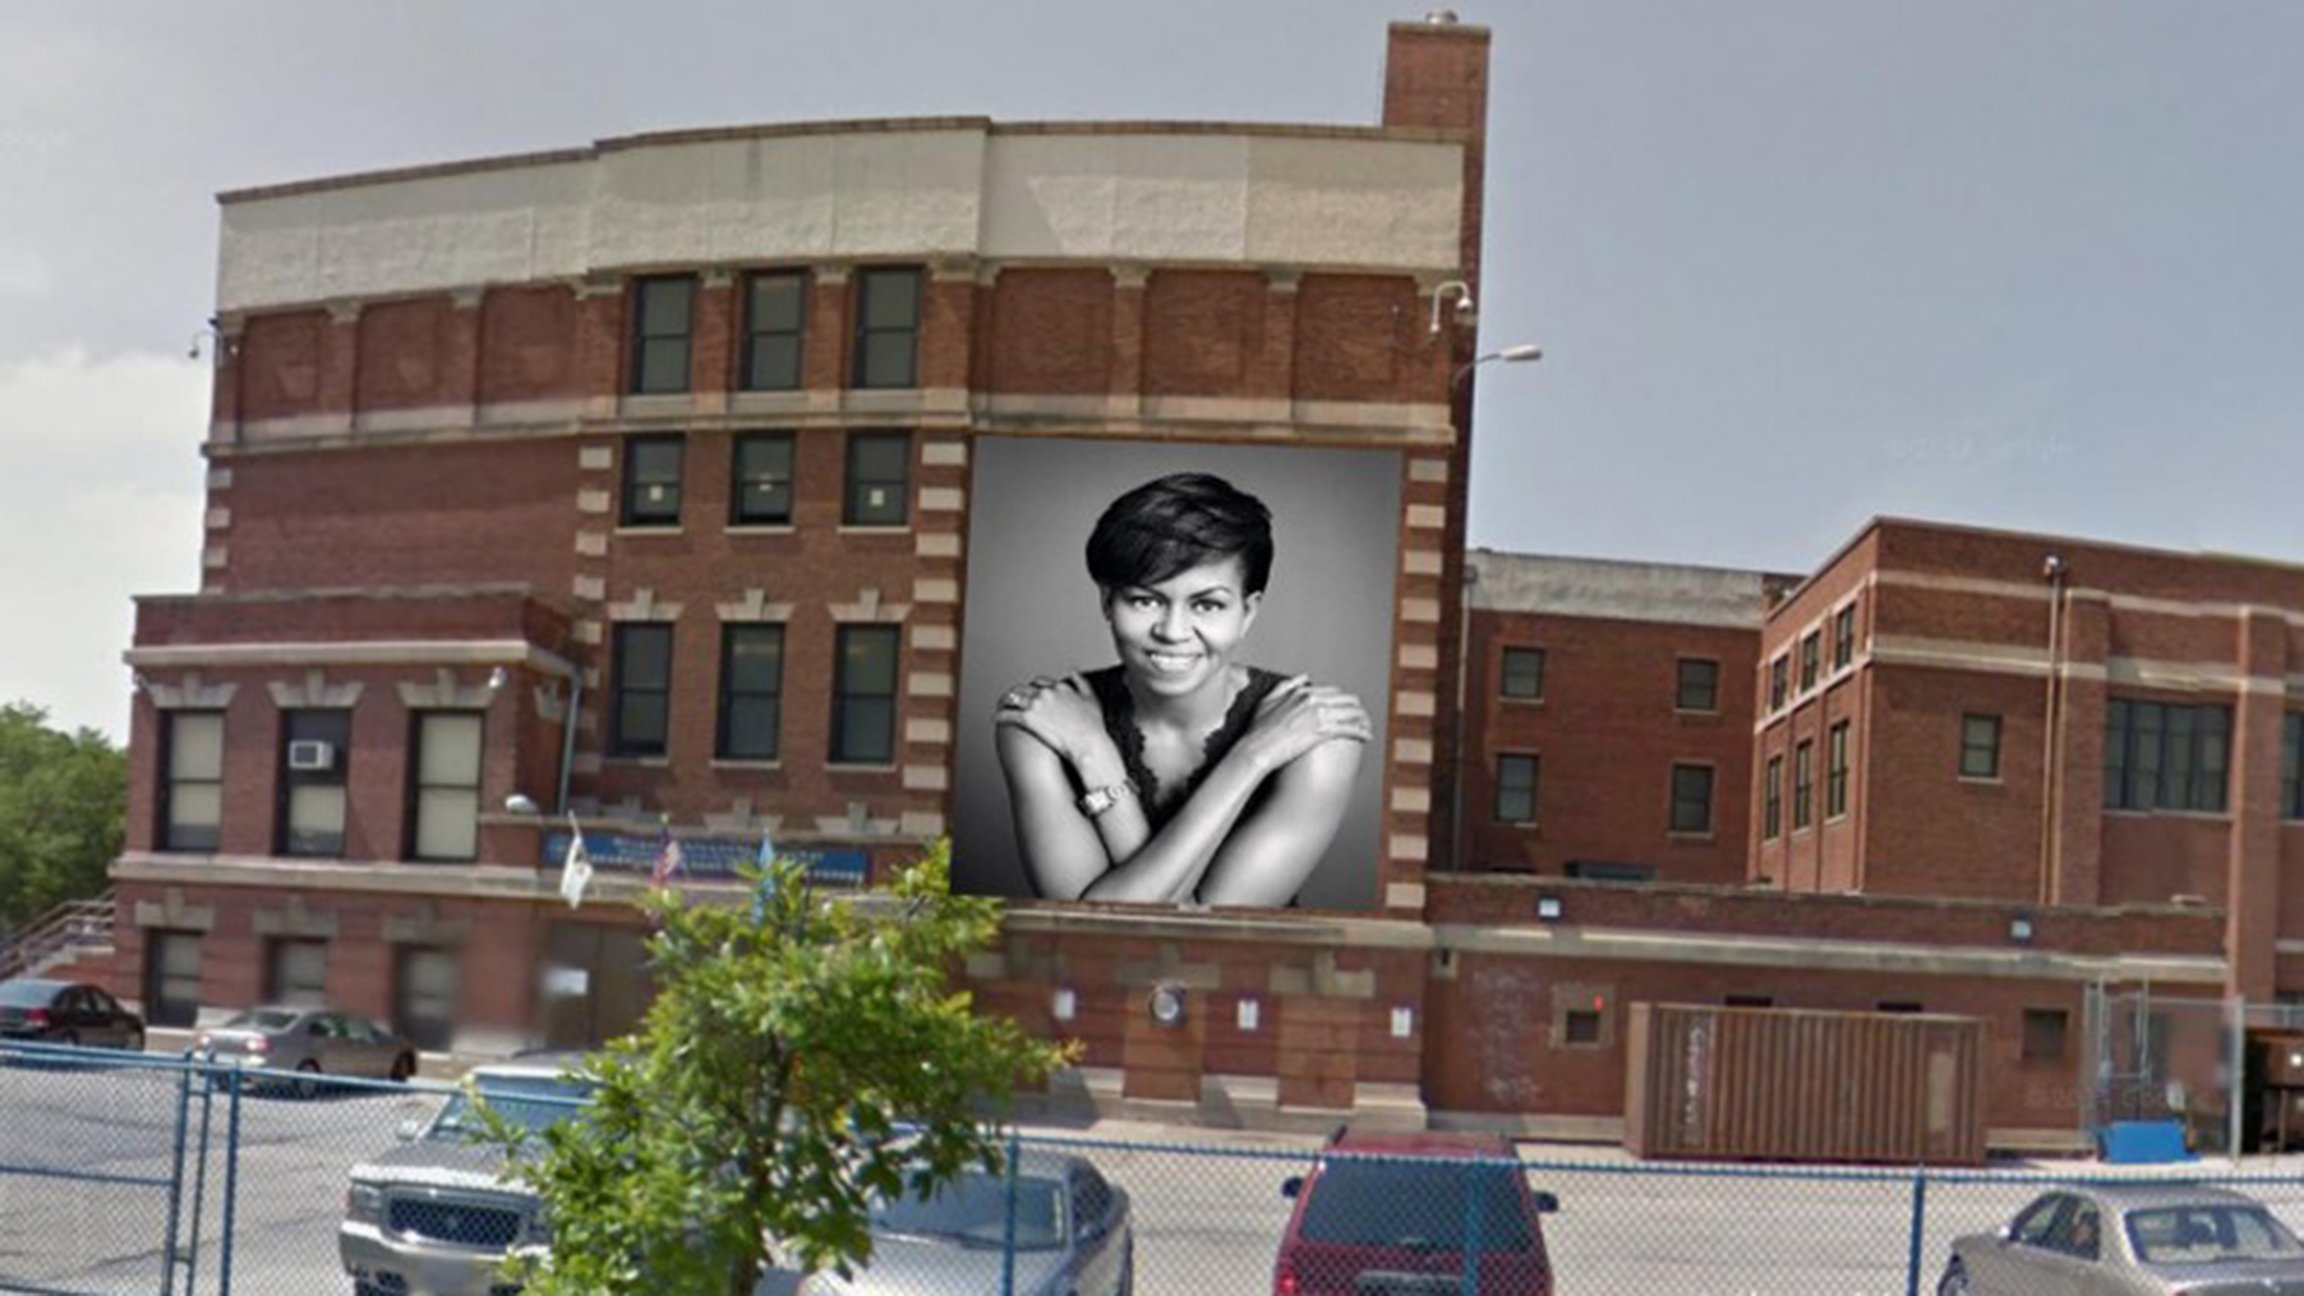 Chicago artist planning michelle obama mural at south for Elementary school mural